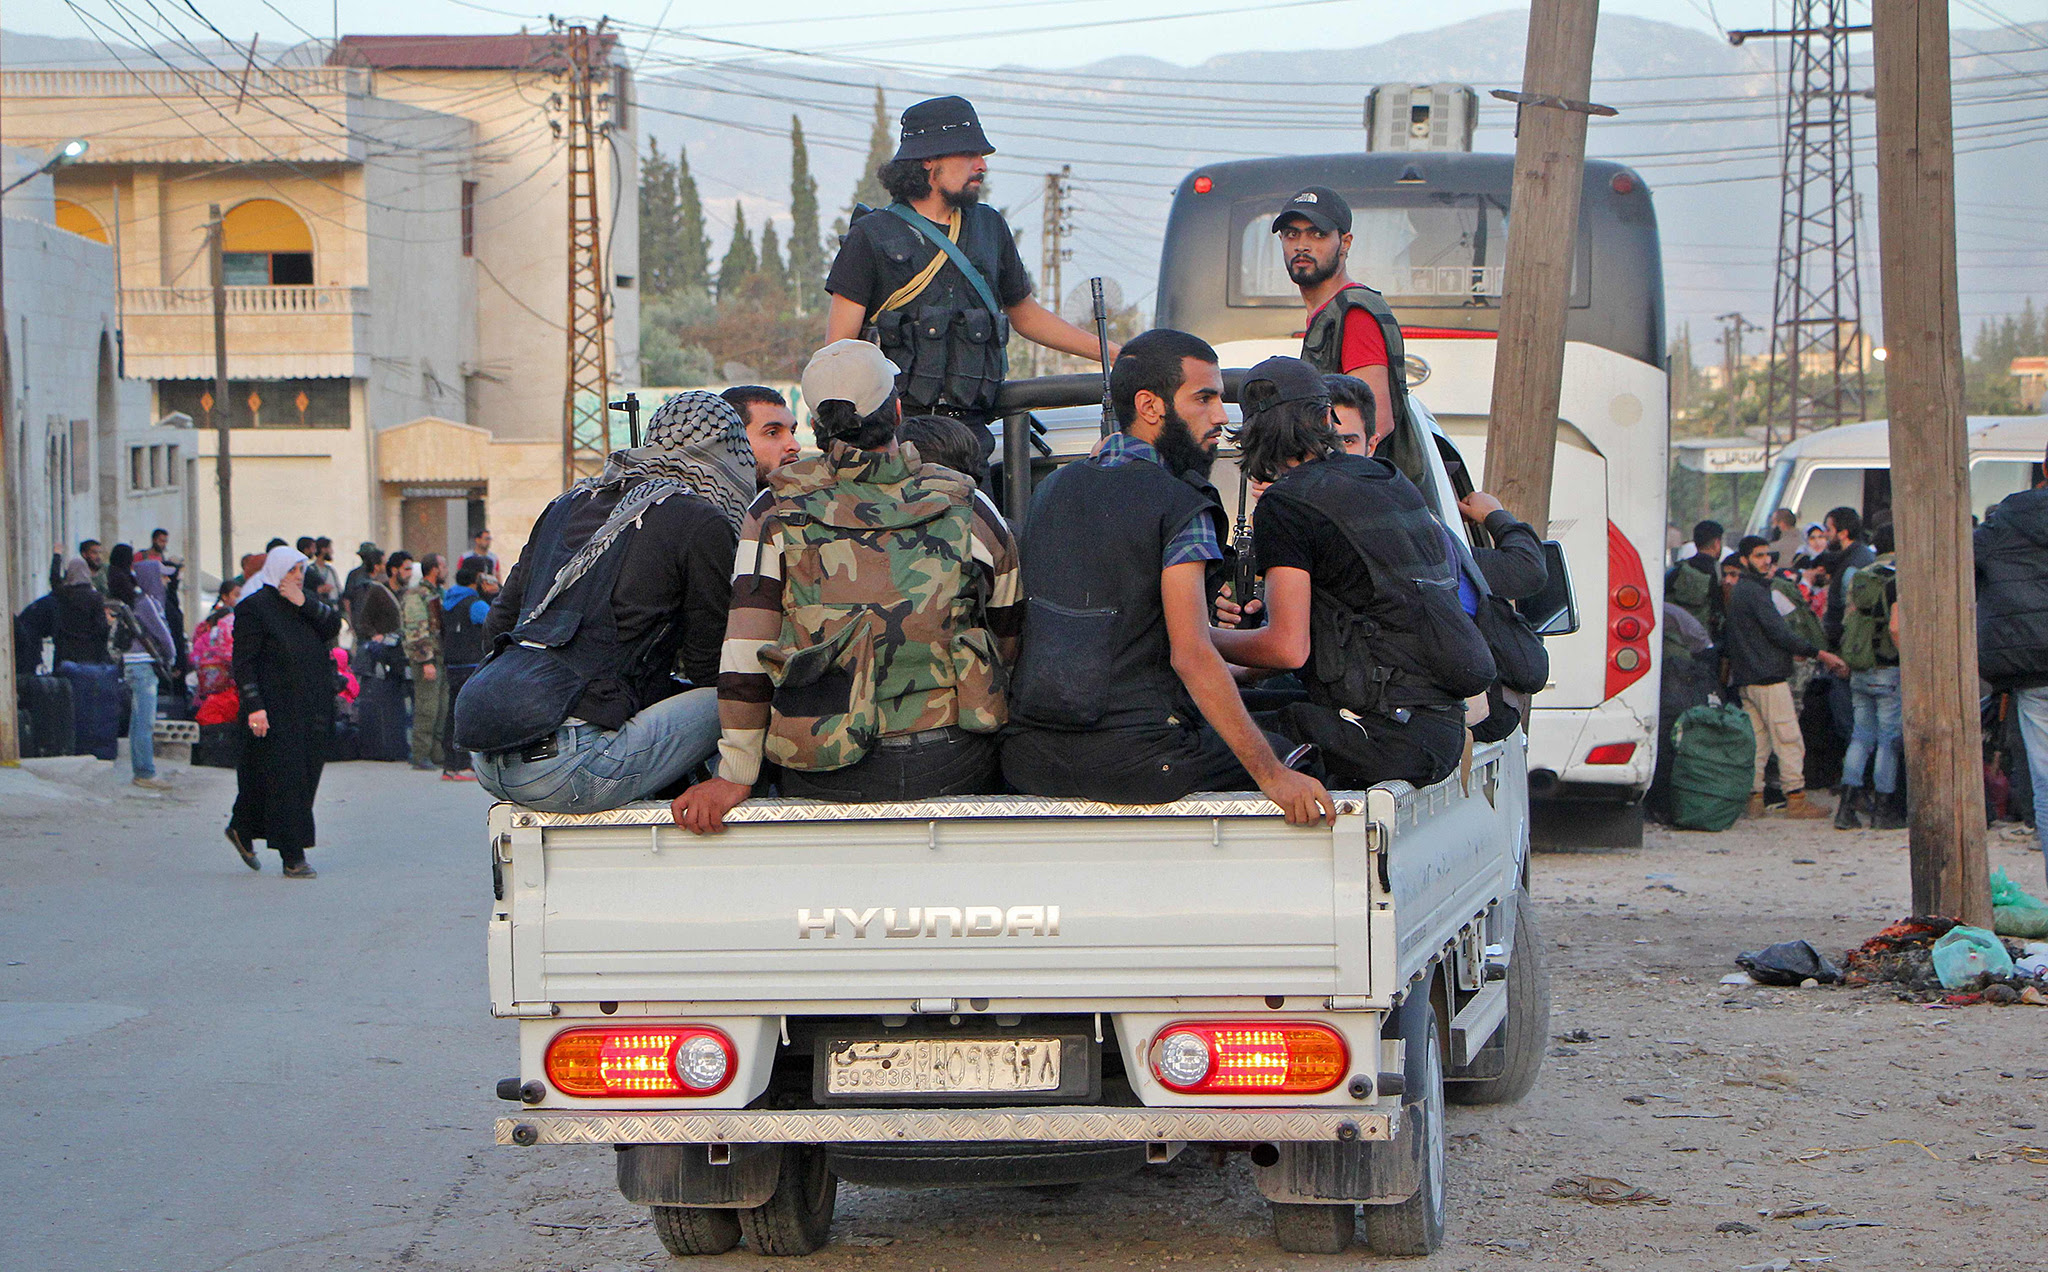 Rebel fighters arrive in Idlib following their evacuation from Qudssaya and al-Hamah, neighbourhoods of the Syrian capital, on October 14, 2016. / AFP PHOTO/AFP/Getty Images